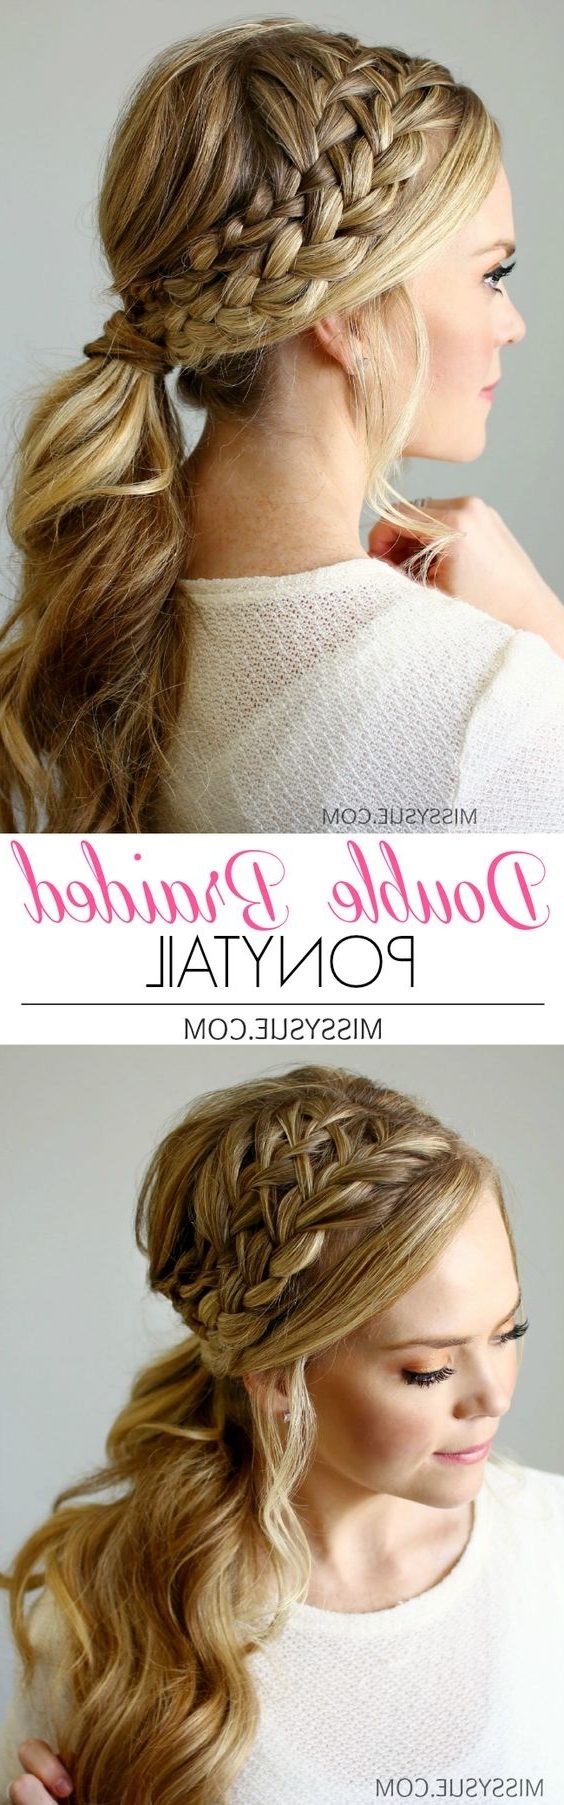 30 Simple Easy Ponytail Hairstyles For Lazy Girls – Ponytail Ideas 2018 With Regard To Most Popular Side Pony Hairstyles With Fishbraids And Long Bangs (View 15 of 20)